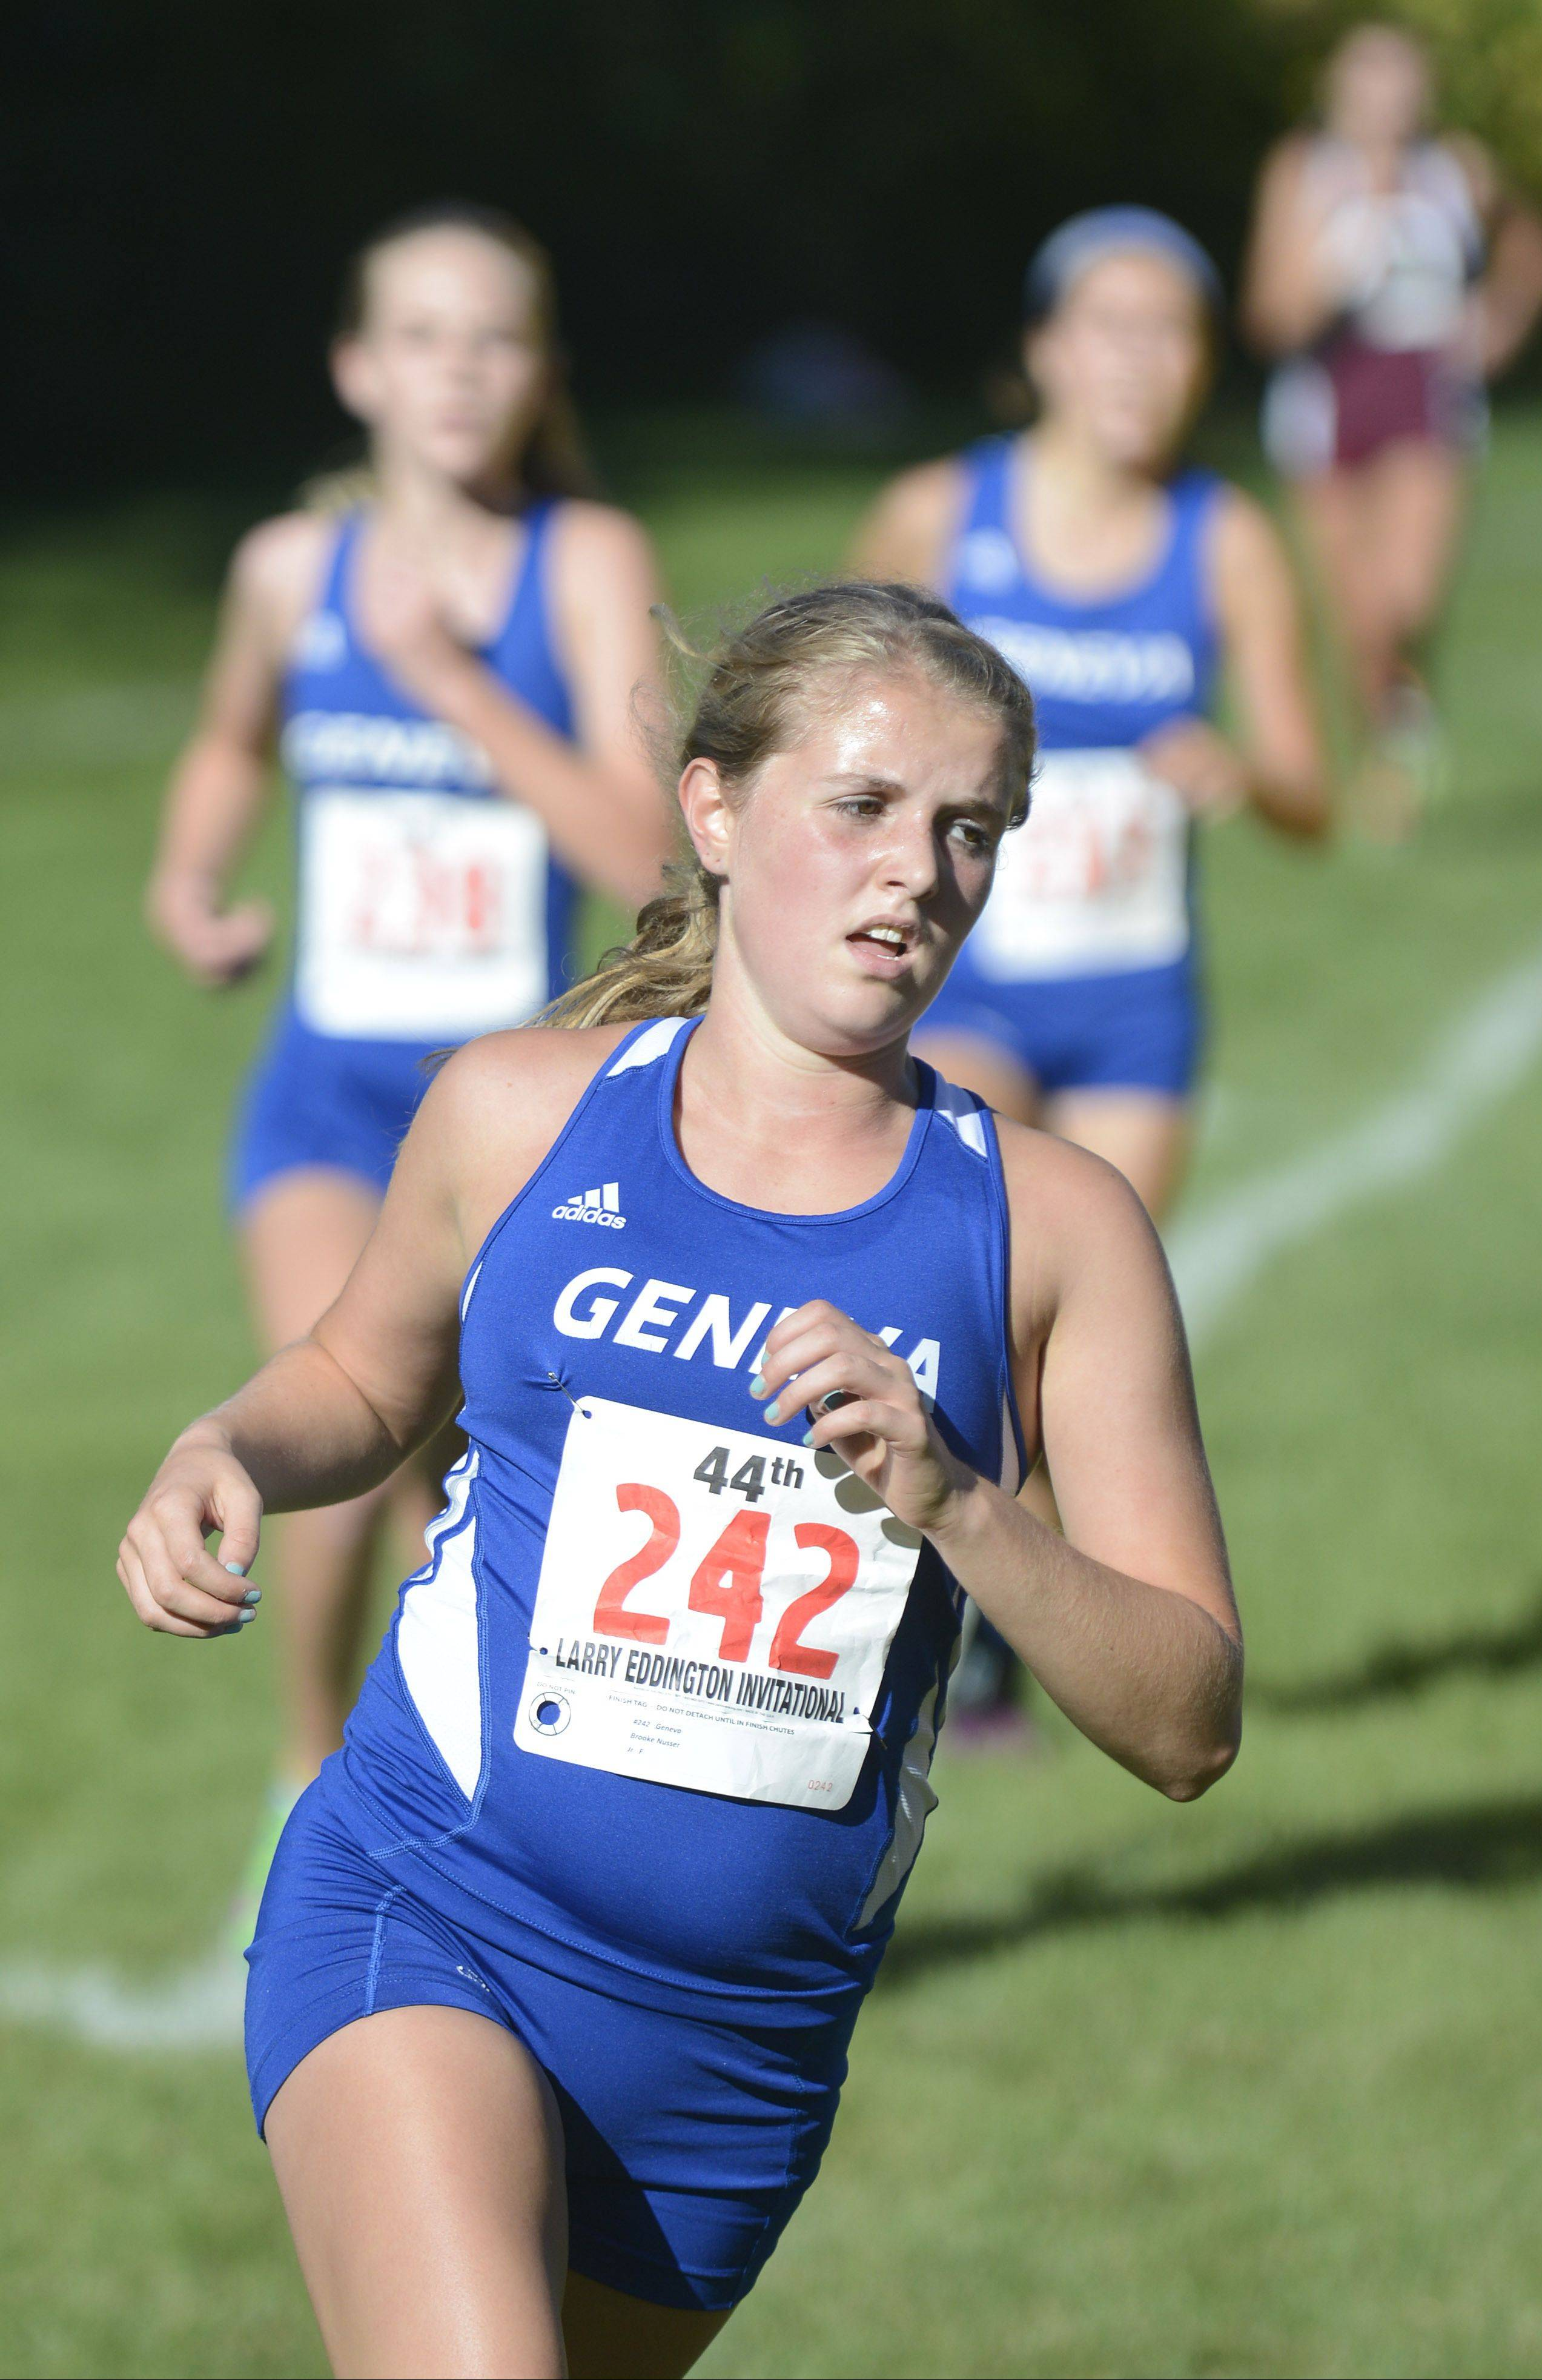 Geneva's Brooke Nusser leads teammates Emma McSpadden and McKenzie Altmayer to the finish line, taking seventh place, with Altmayer taking eighth and McSpadden ninth at the Kaneland Invitational in Elburn on Saturday.